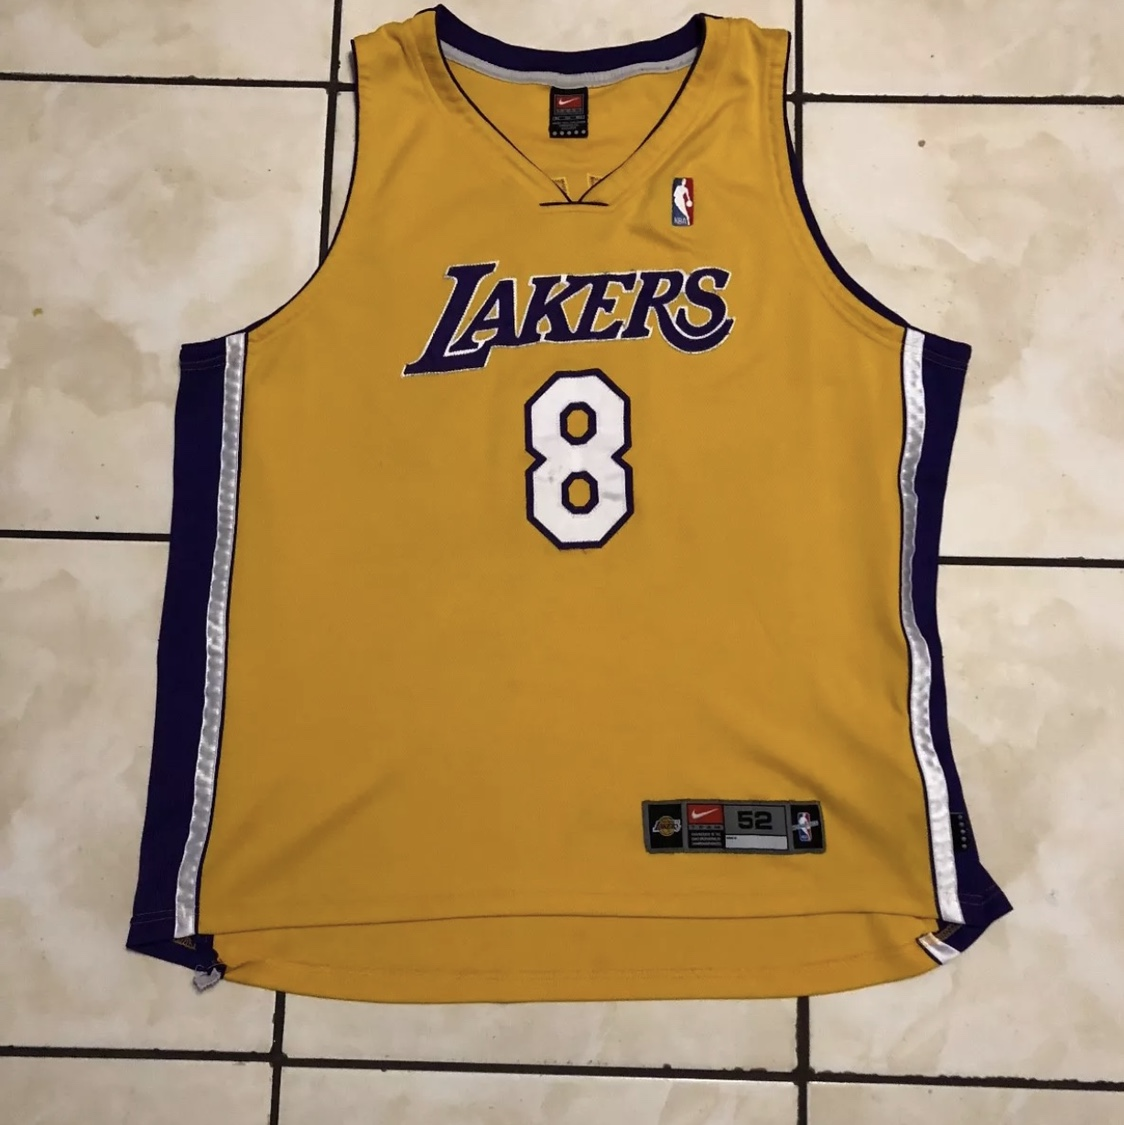 new style 43d00 481d1 90s Kobe Bryant Lakers jersey number 8 from his... - Depop